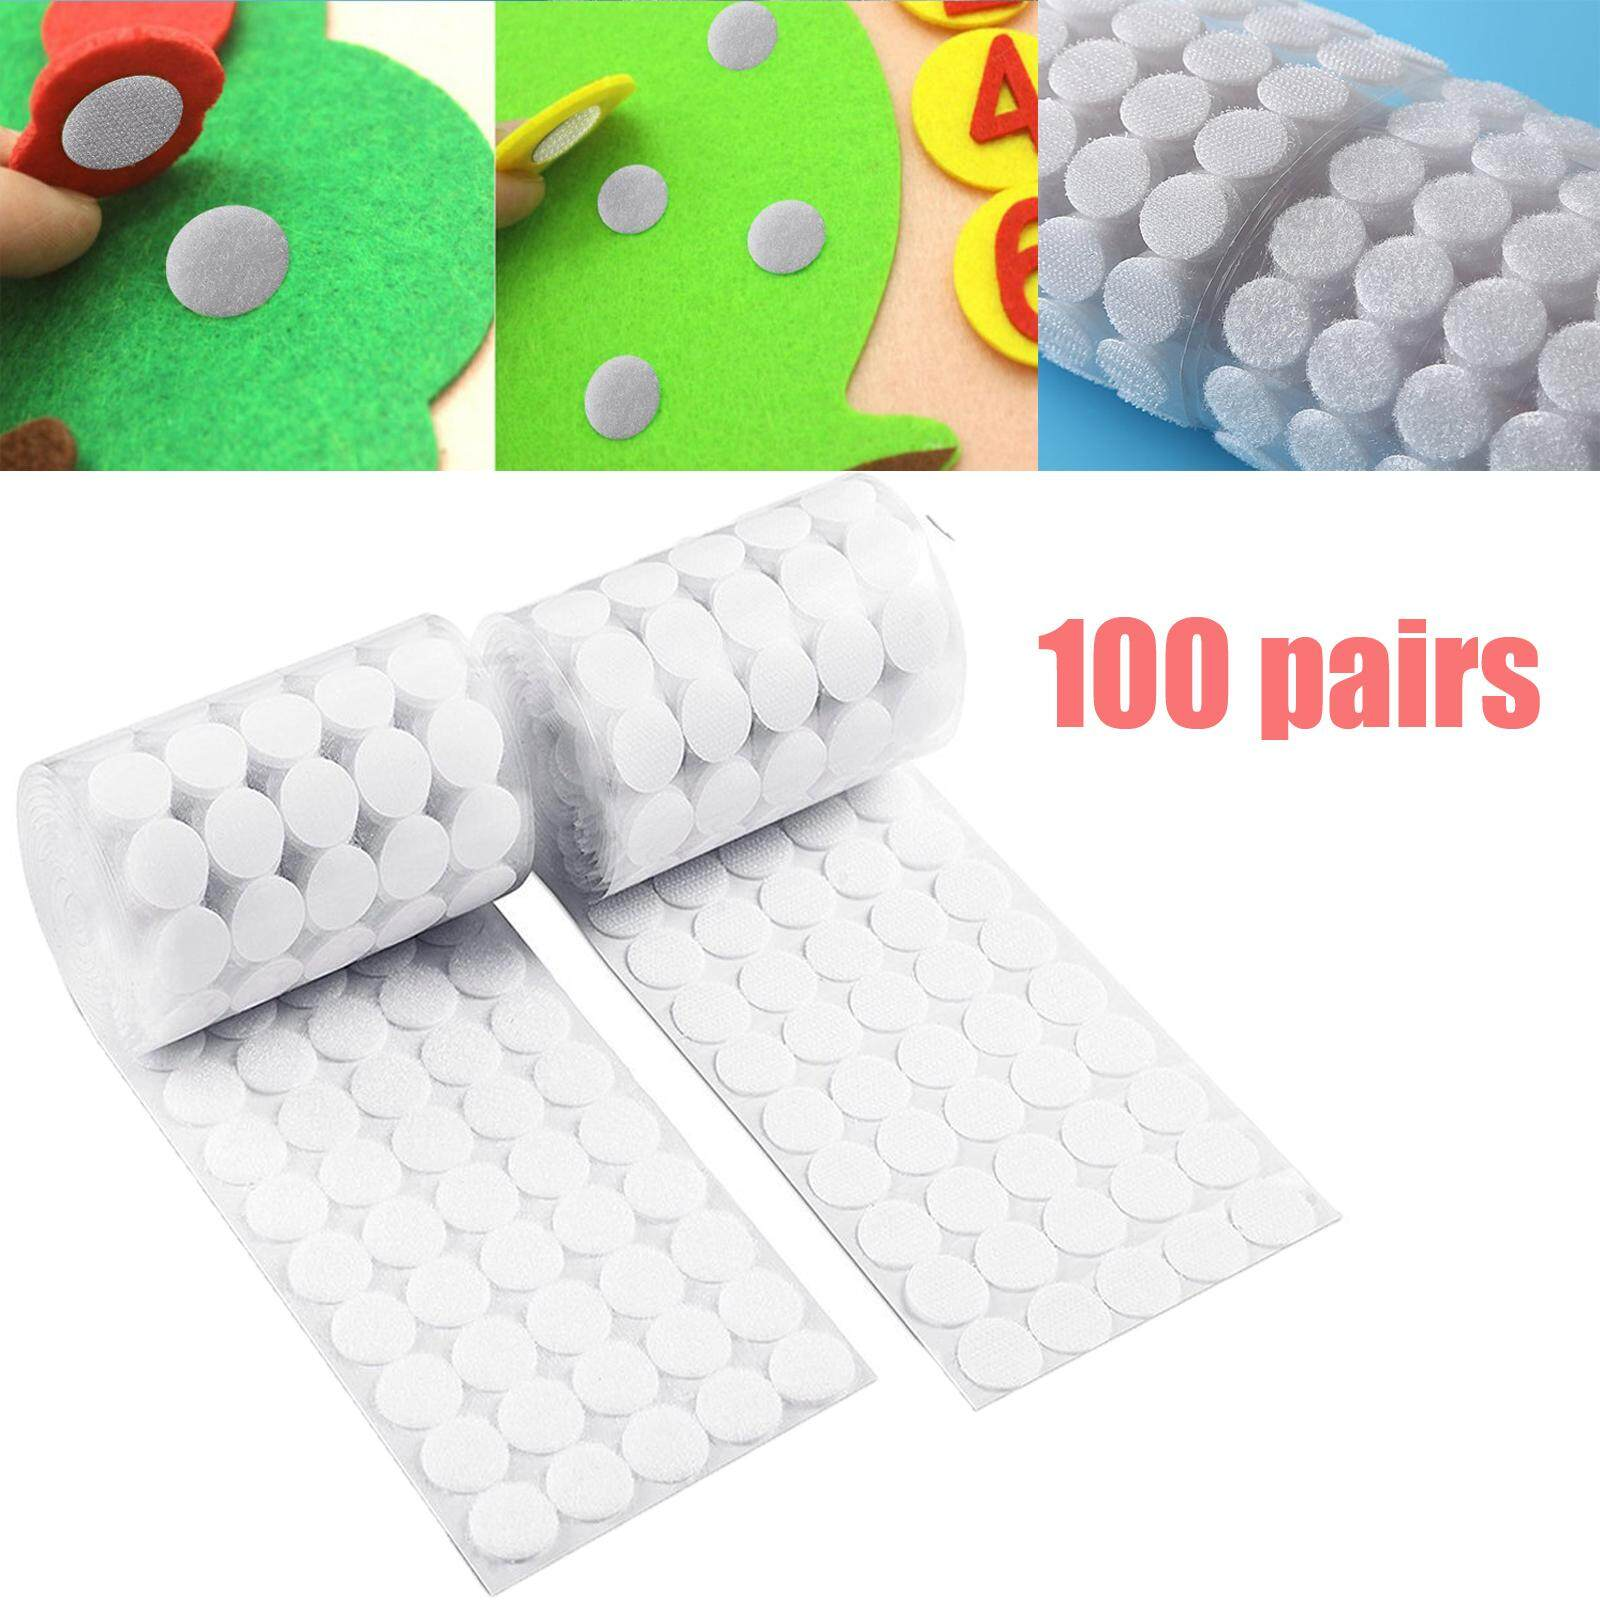 100 Pairs Self Adhesive Sticky Back Hook & Loop Fastening Tape Dots Dia 20mm